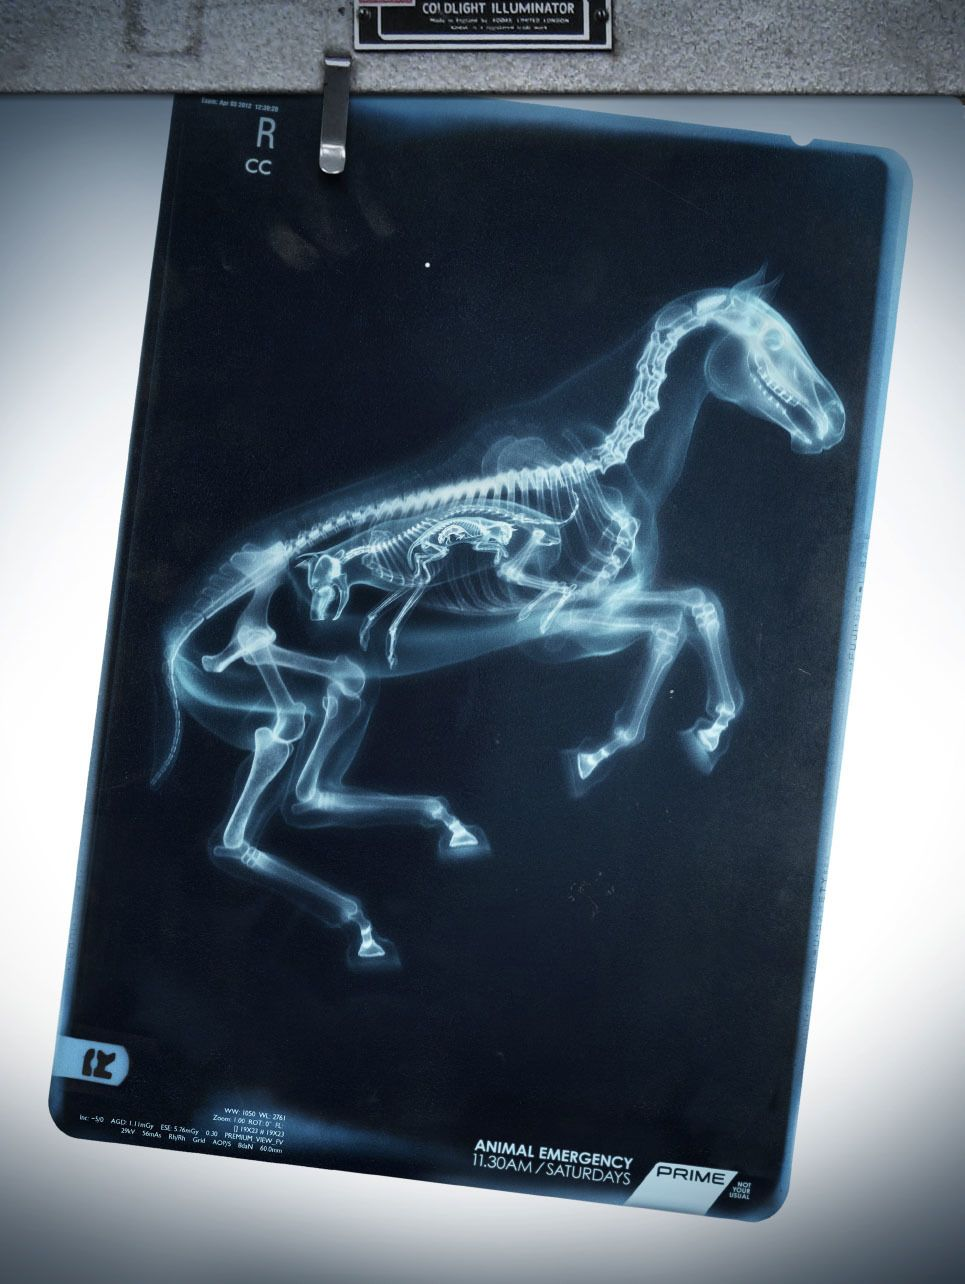 Pin by Stacey Bushby on XRays Pregnant horse, Pregnant